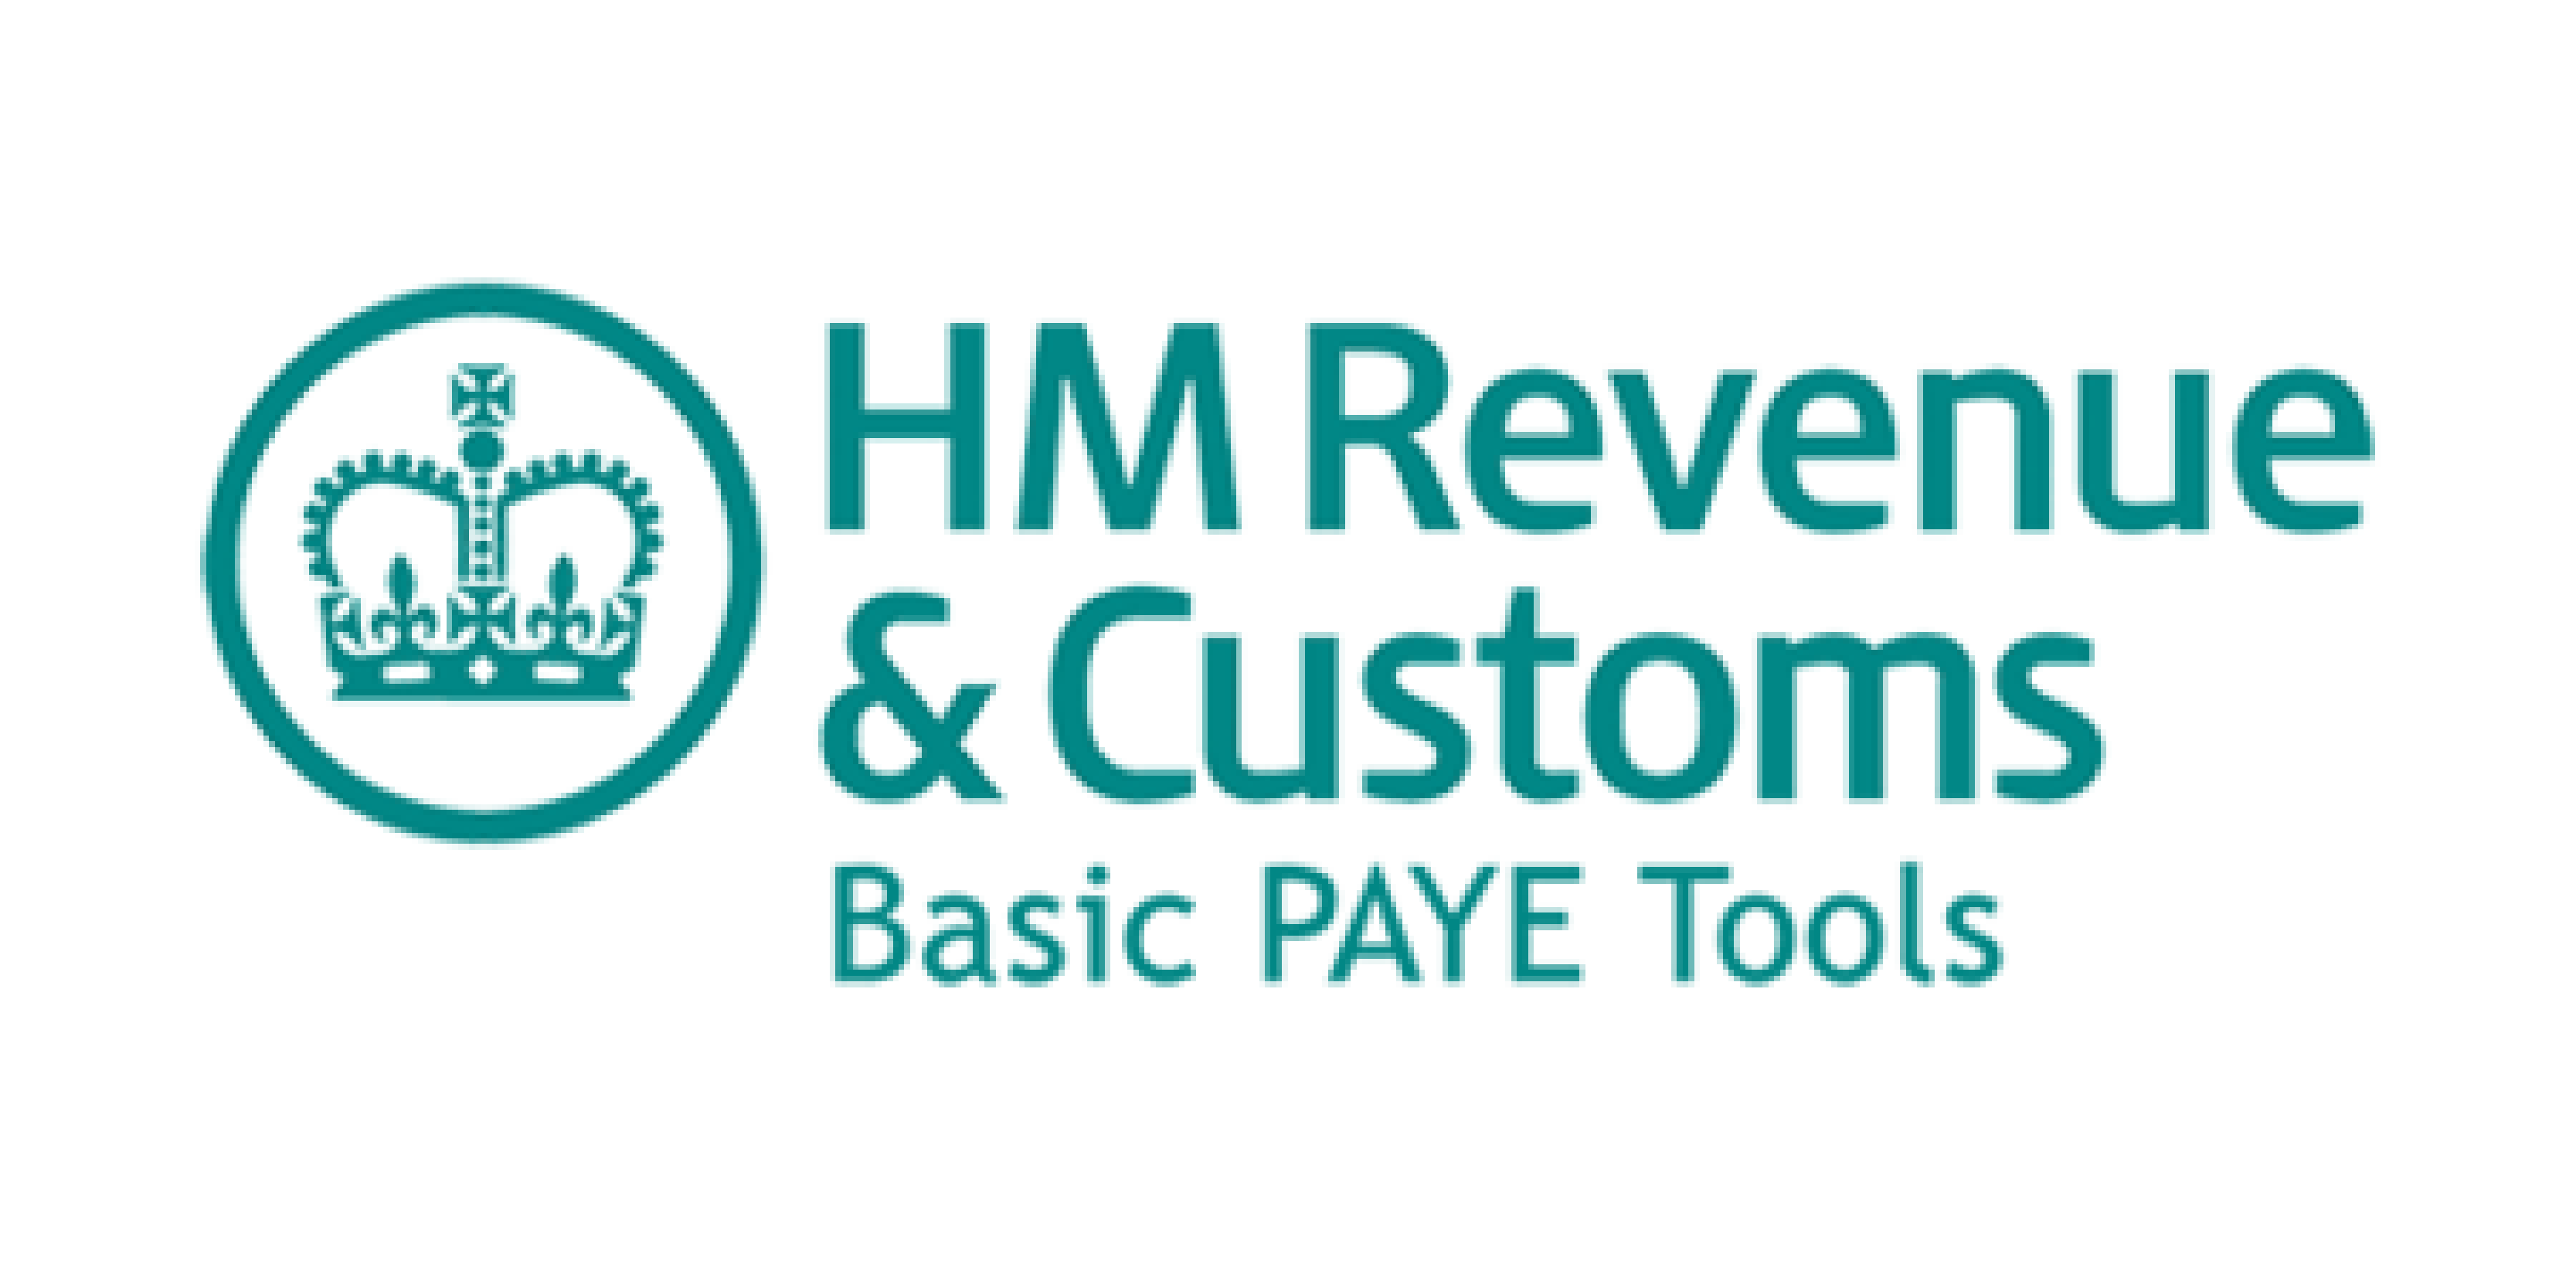 Switching from HMRC Basic PAYE Tools to BrightPay